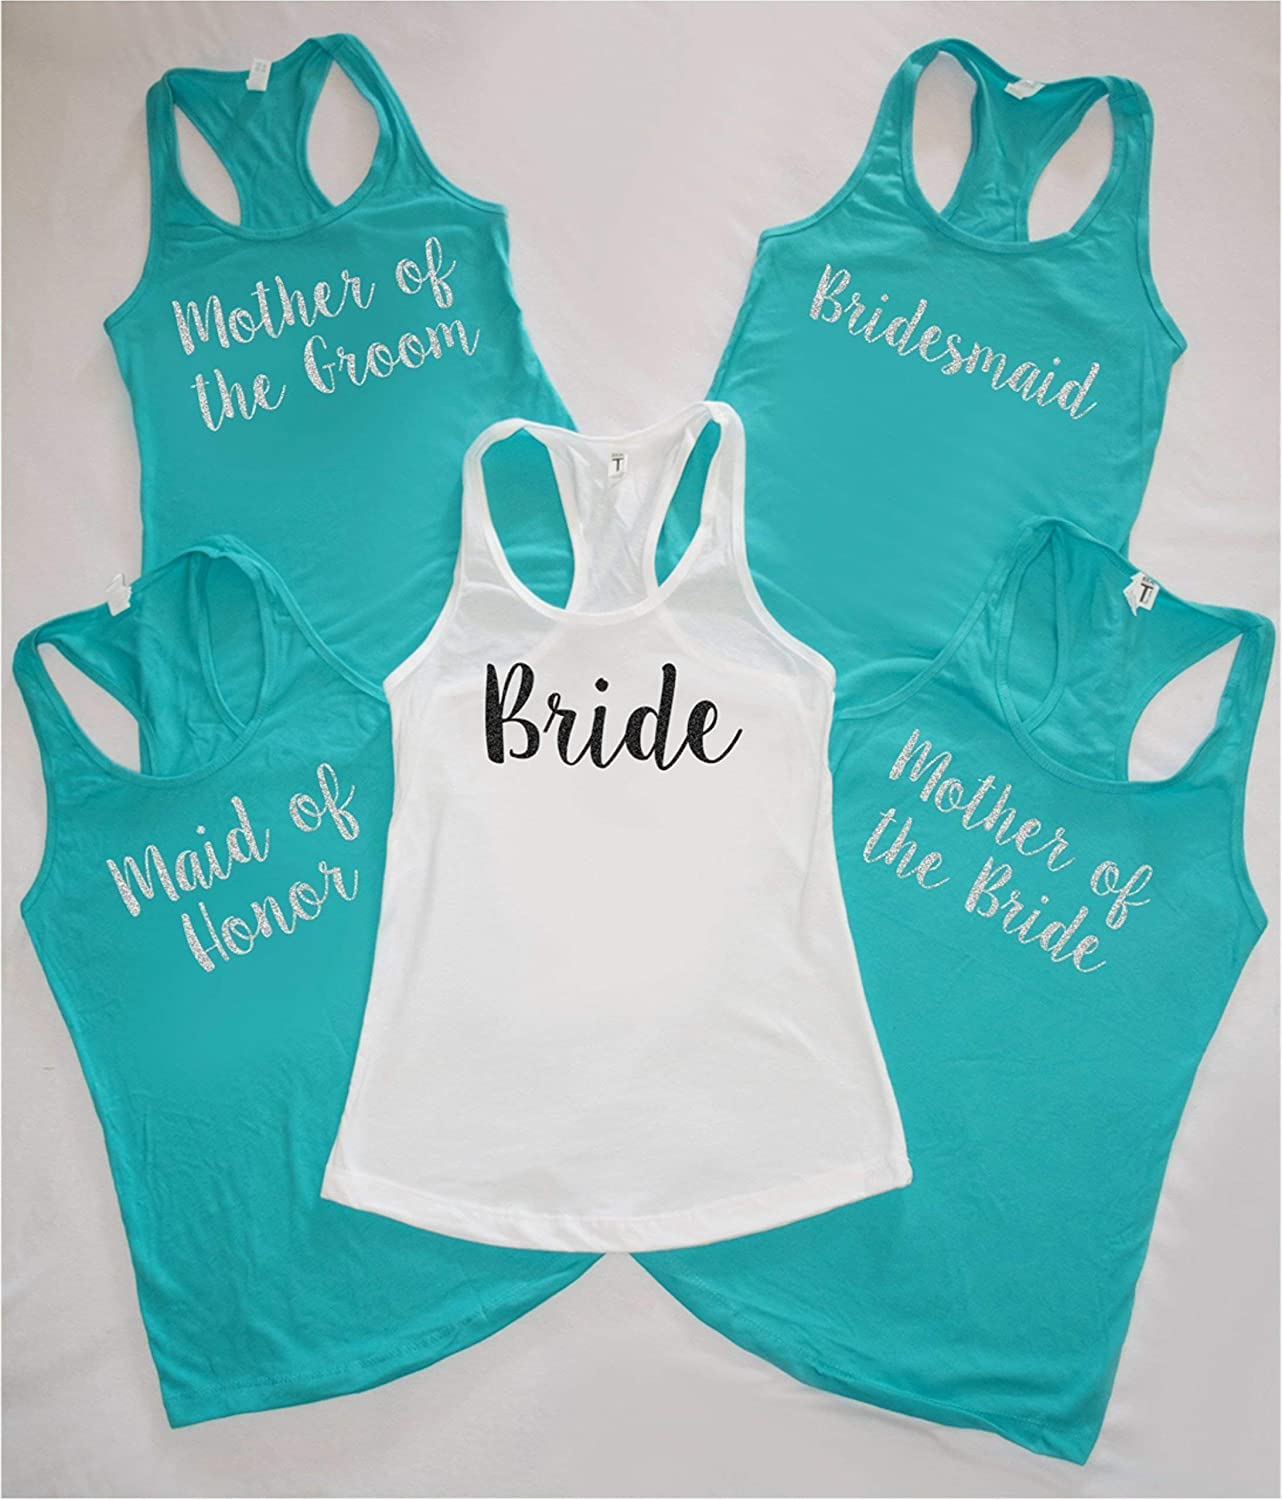 Set of Wizard Themed Bachelorette Party Tanks,Bridal Party Tops,Bachelorette Party,Bachelorette Shirts,Made of Honor Tank,Bridesmaid Tanks